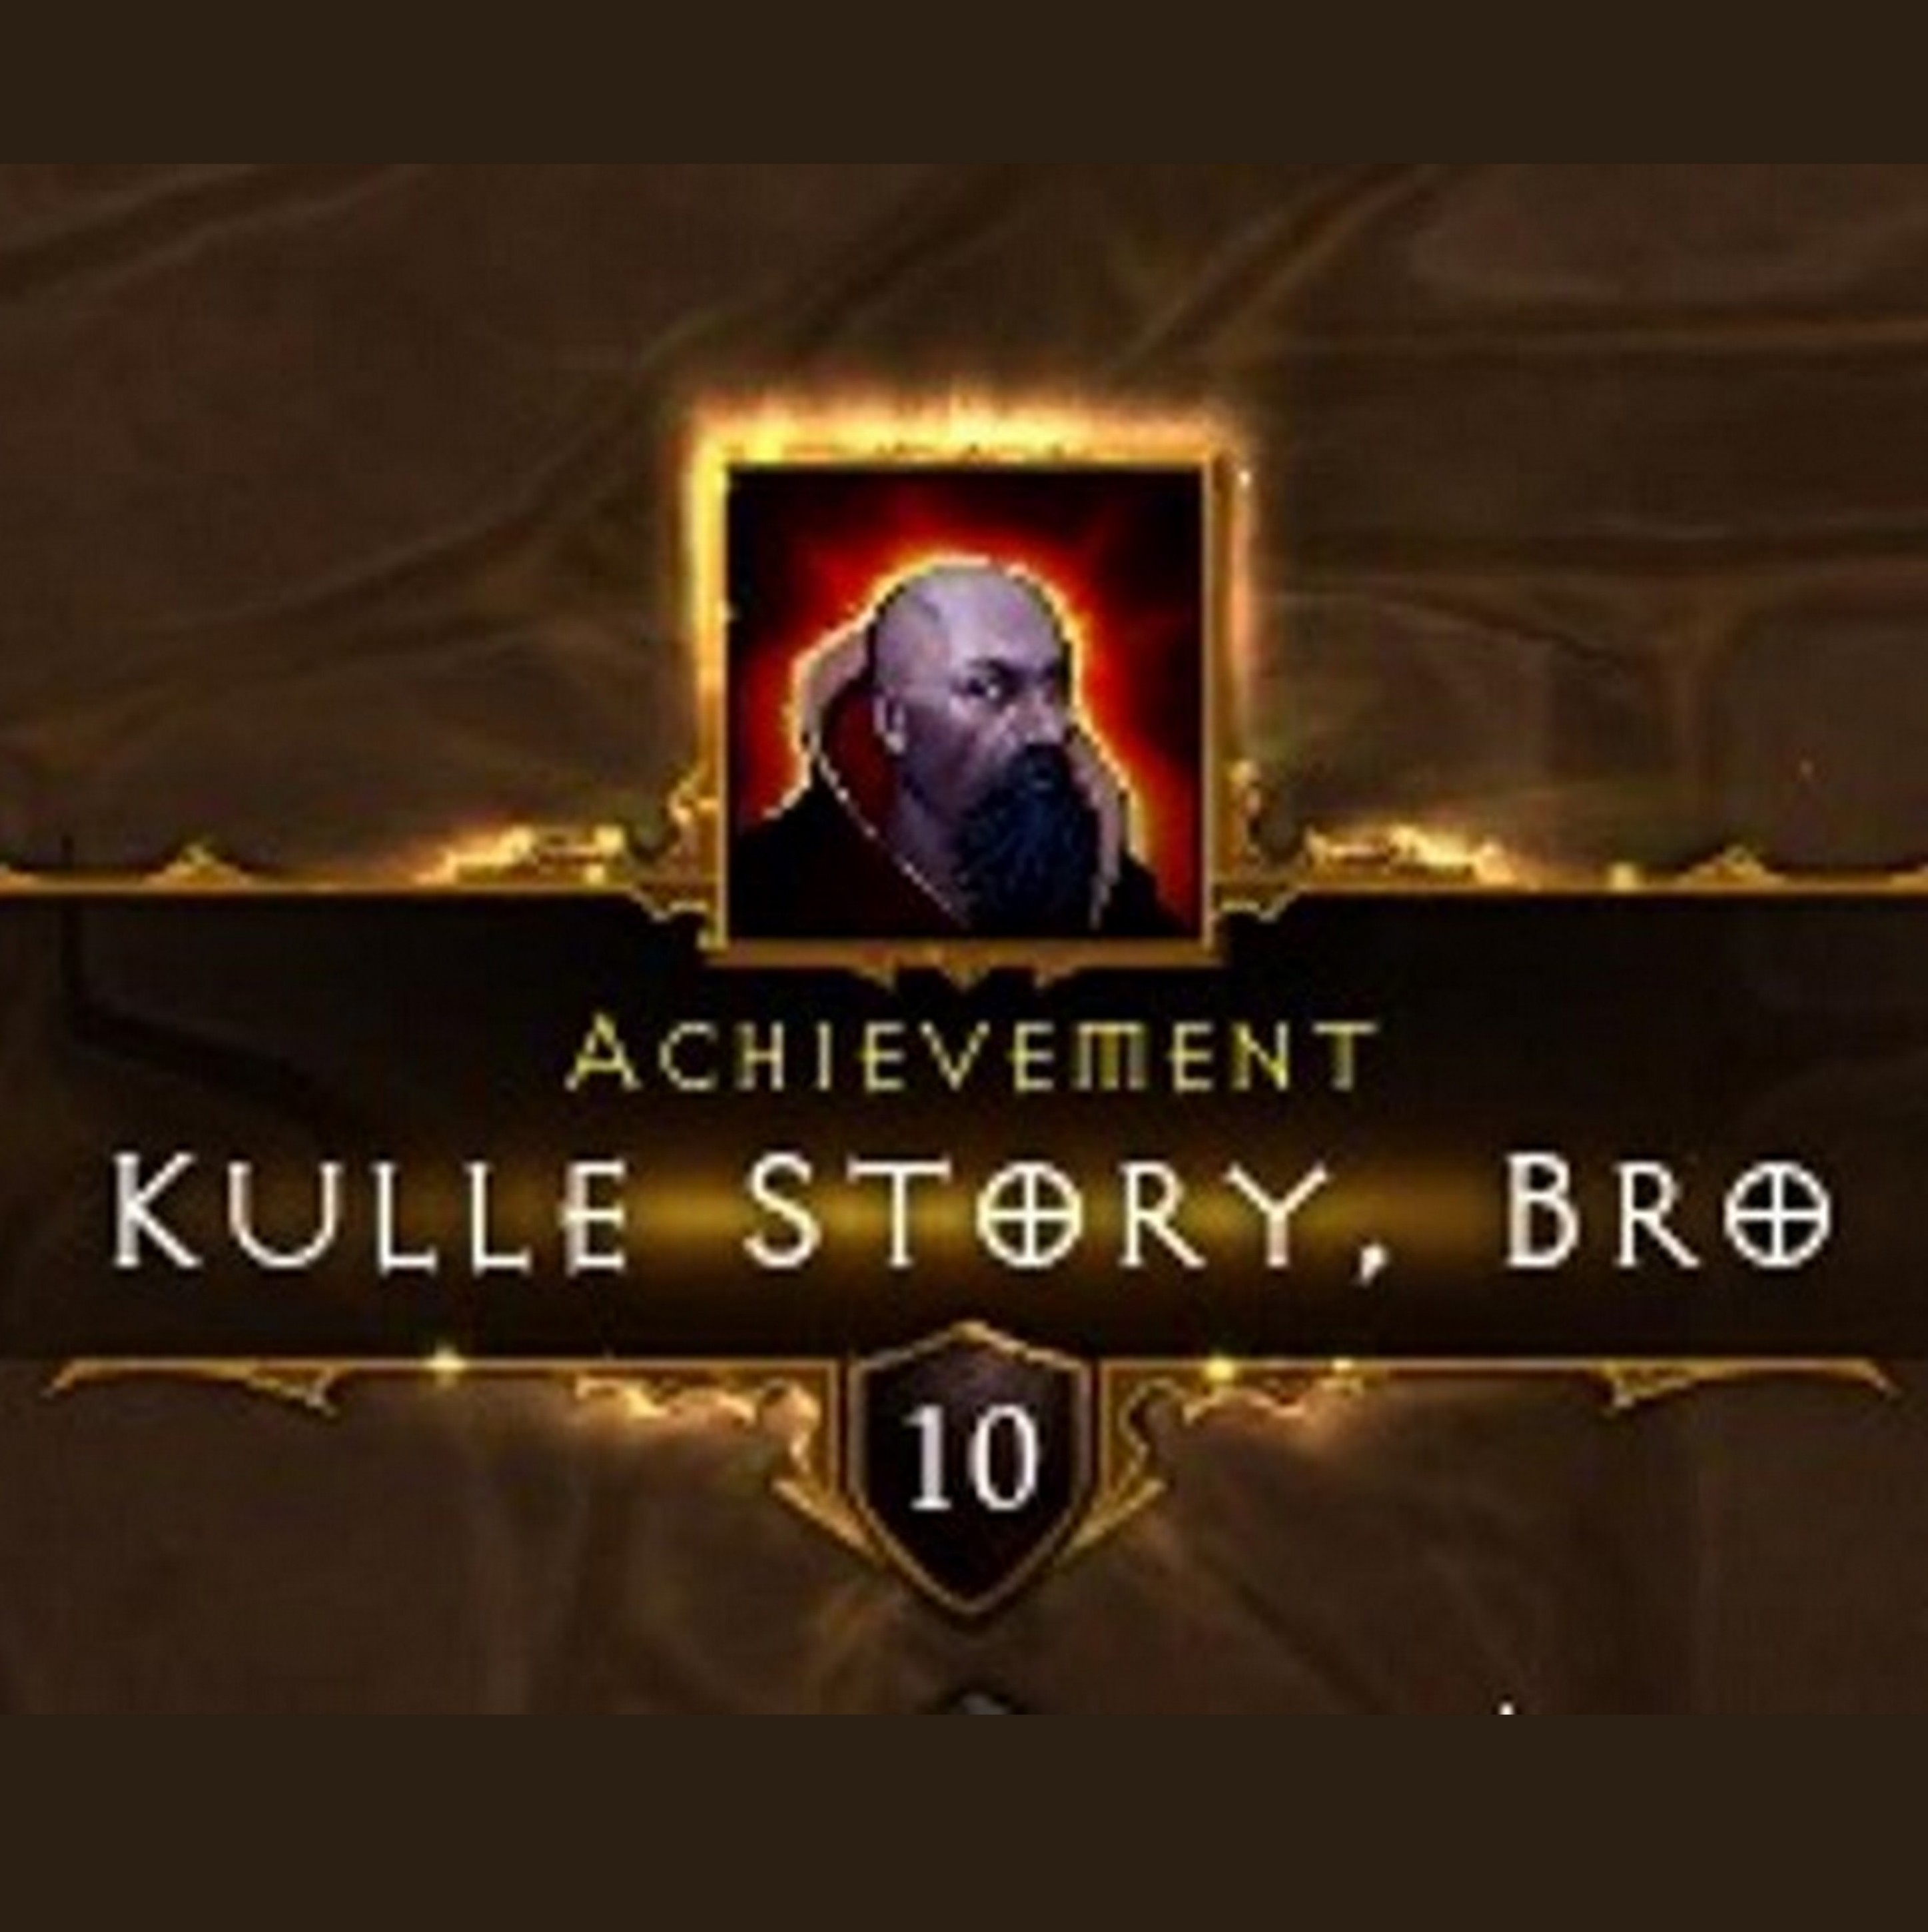 Kulle Story Bro - A Diablo 3 Podcast Episode 26